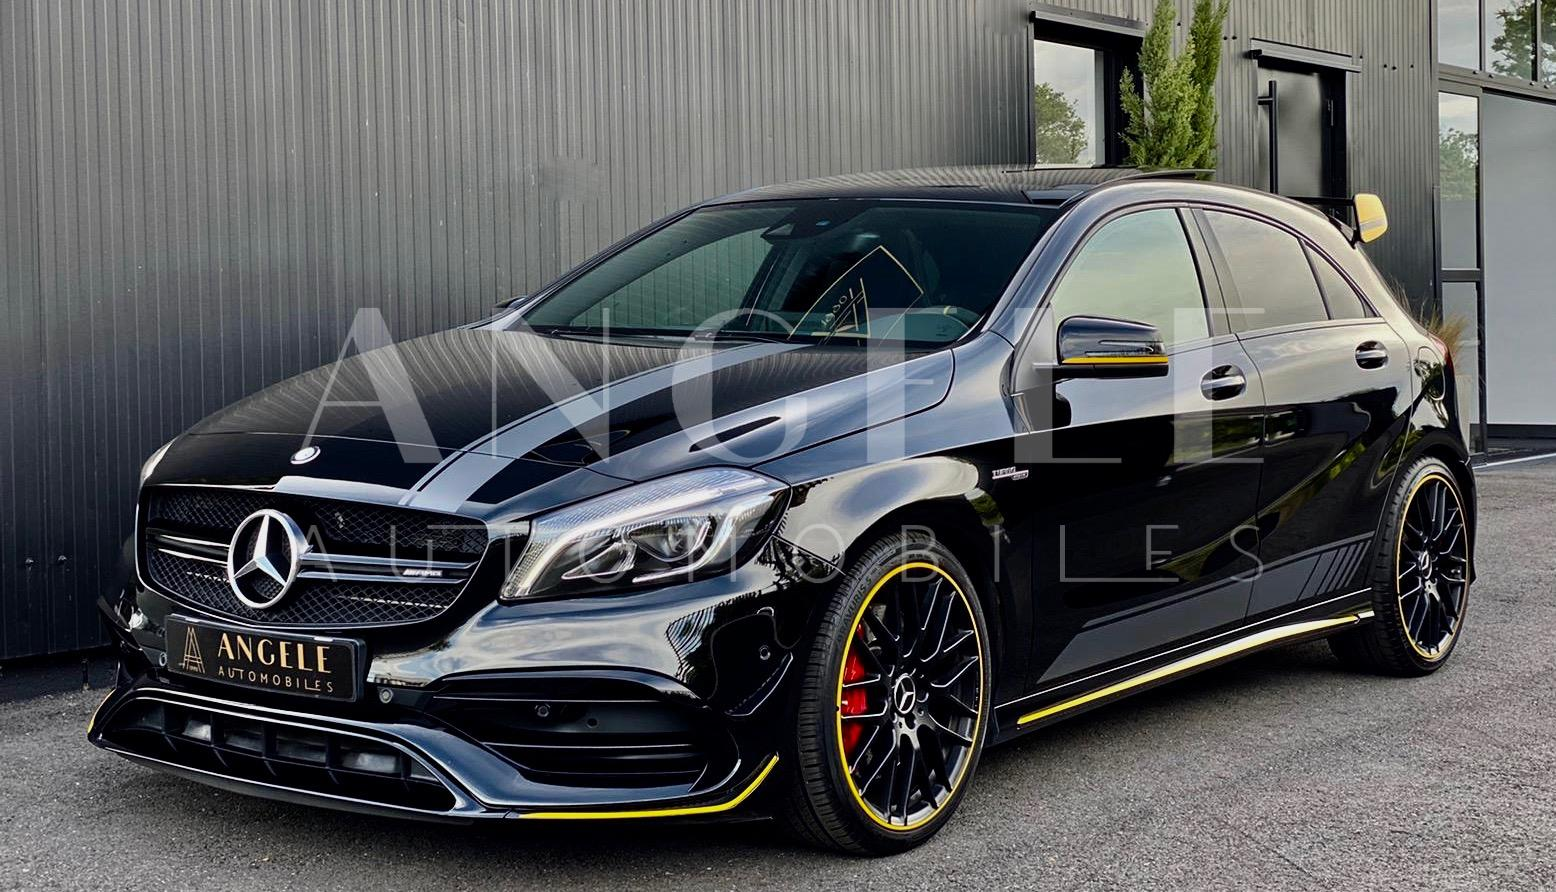 Mercedes A 45 AMG Black & Yellow Toulouse